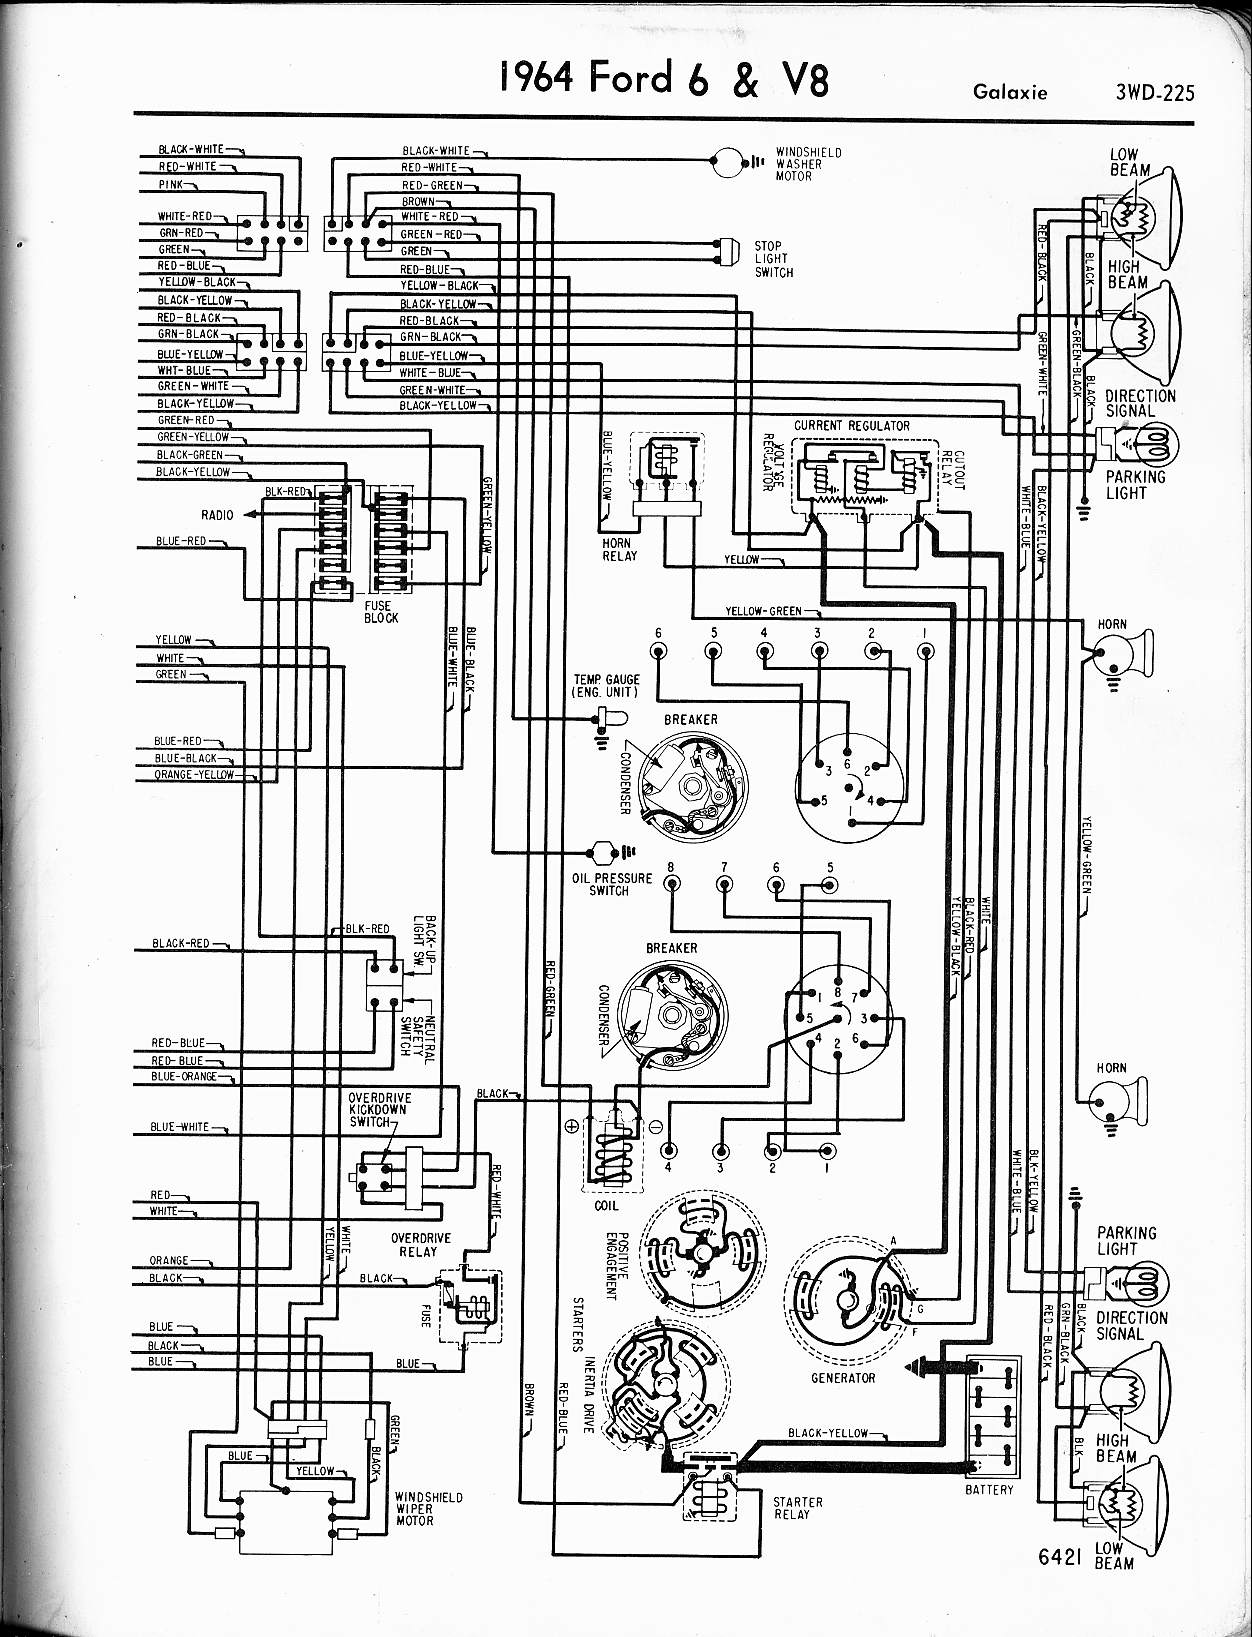 MWire5765 225 57 65 ford wiring diagrams  at soozxer.org